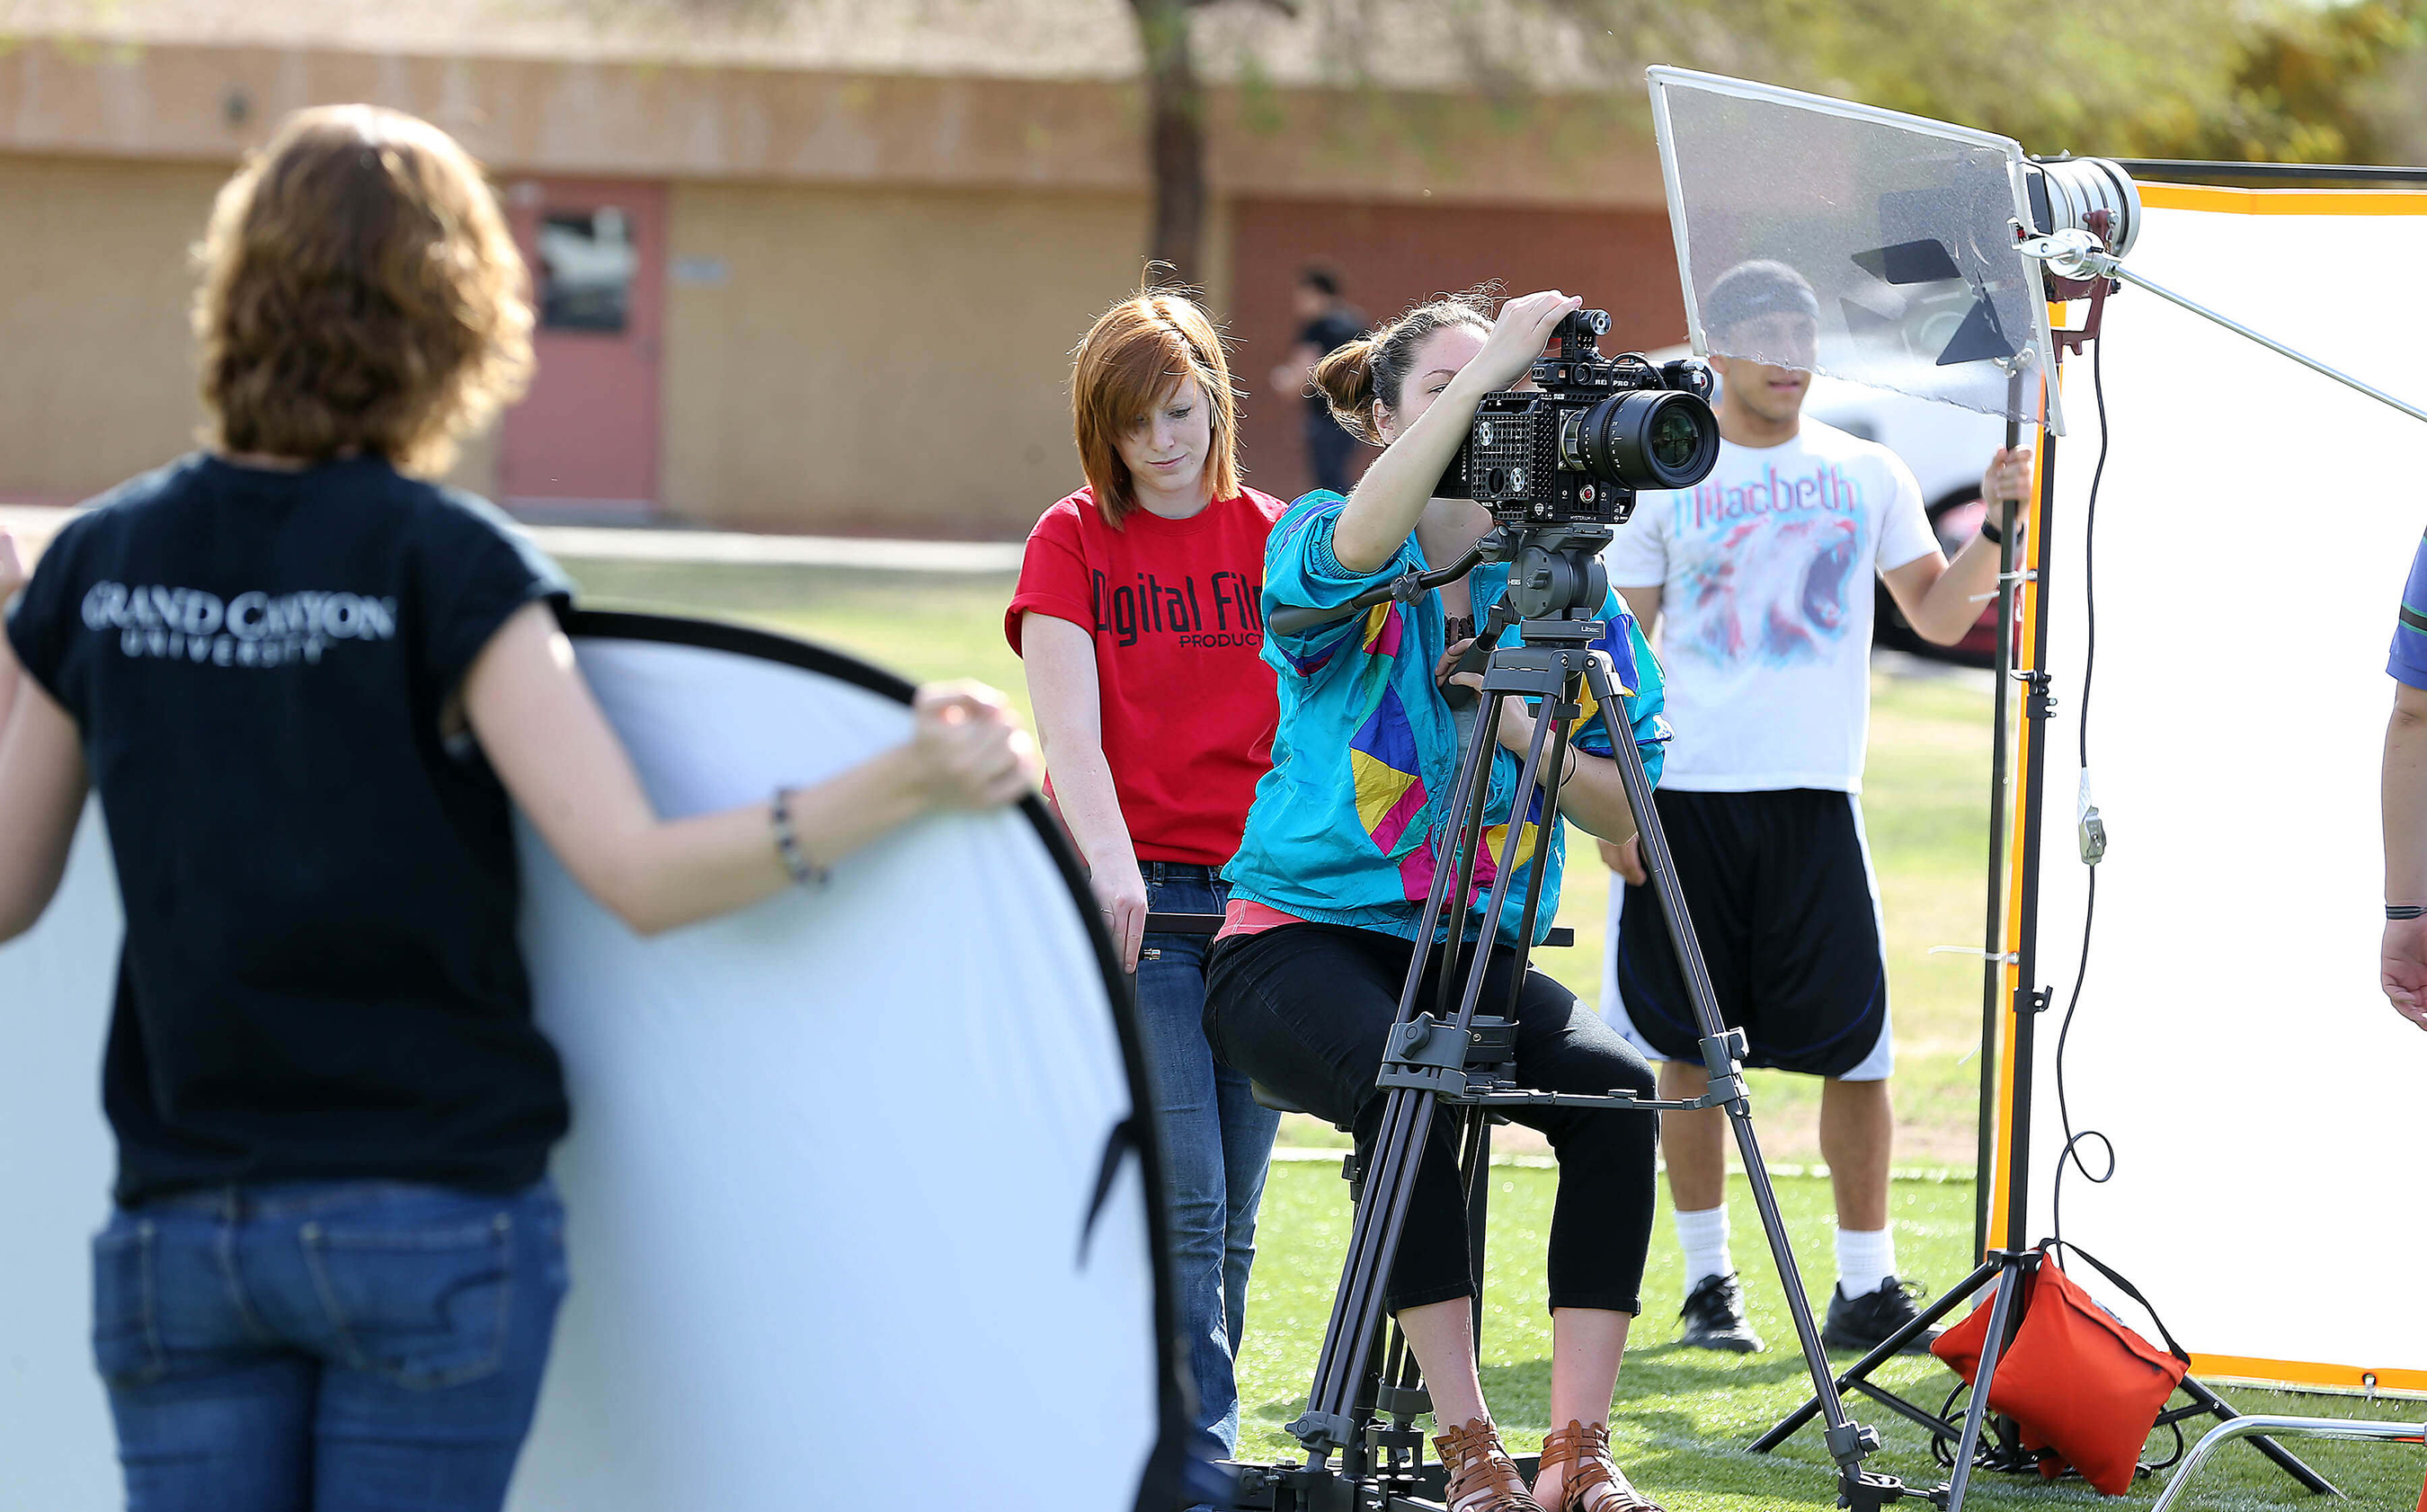 Students in GCU's digital film program can gain hands-on experience while learning the technical aspects of filmmaking.